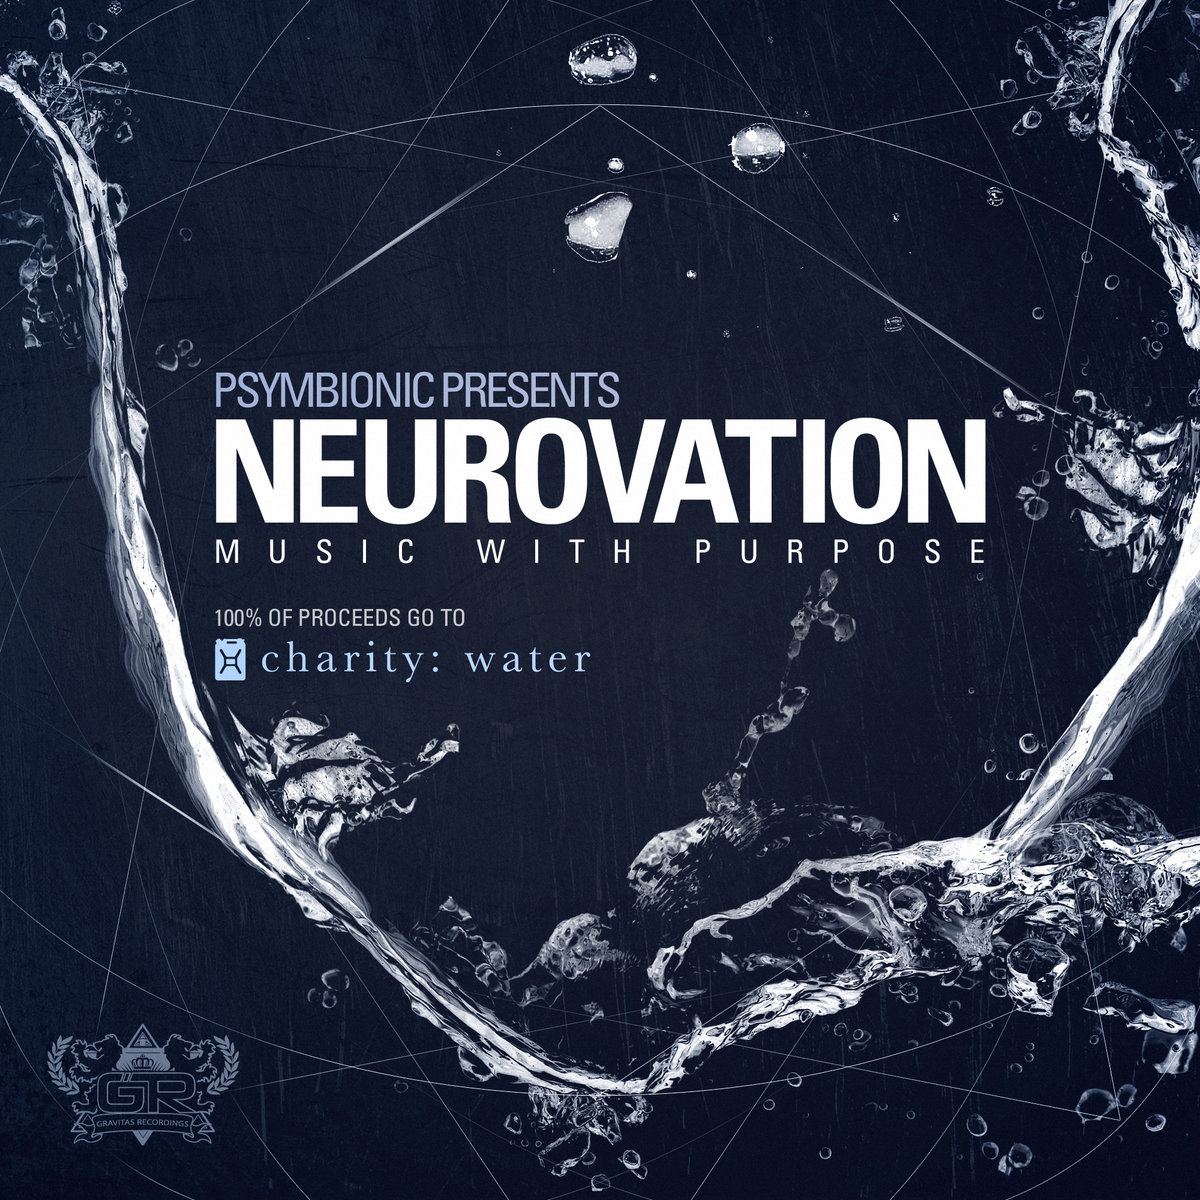 Various Artists - Psymbionic Presents: Neurovation